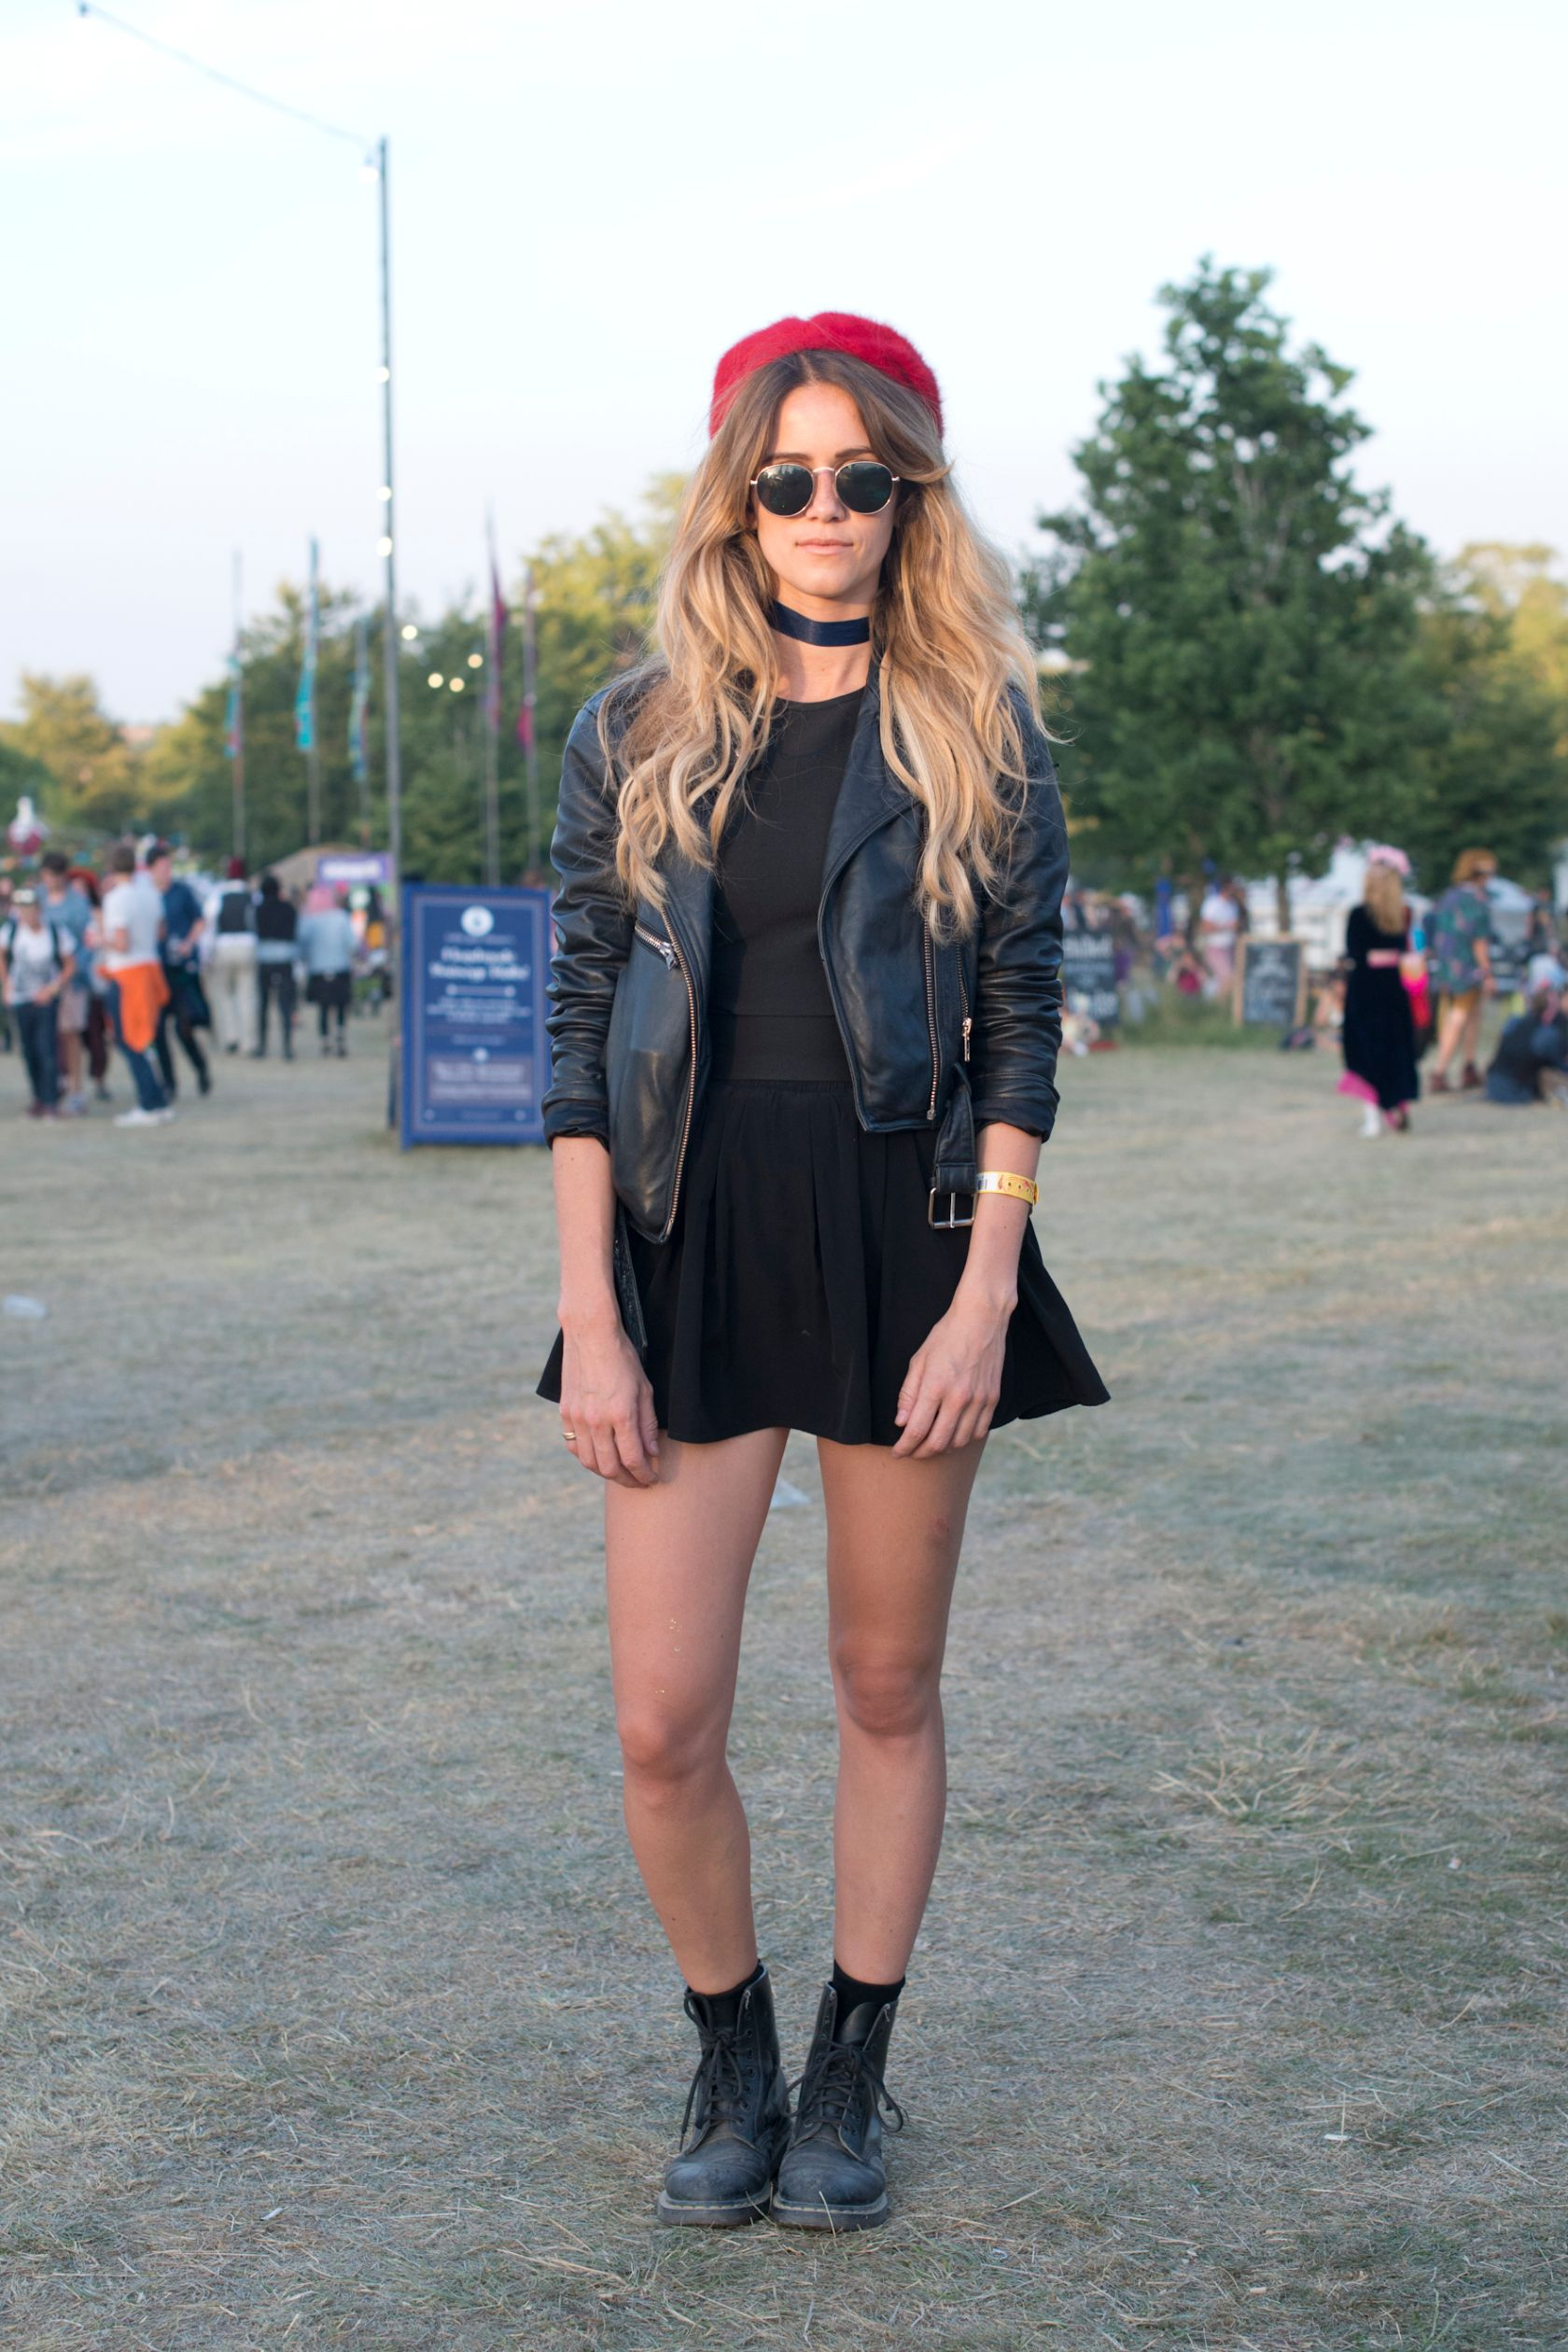 Street Style at The Wilderness Festival 2015 - August 06 To August 09, 2015